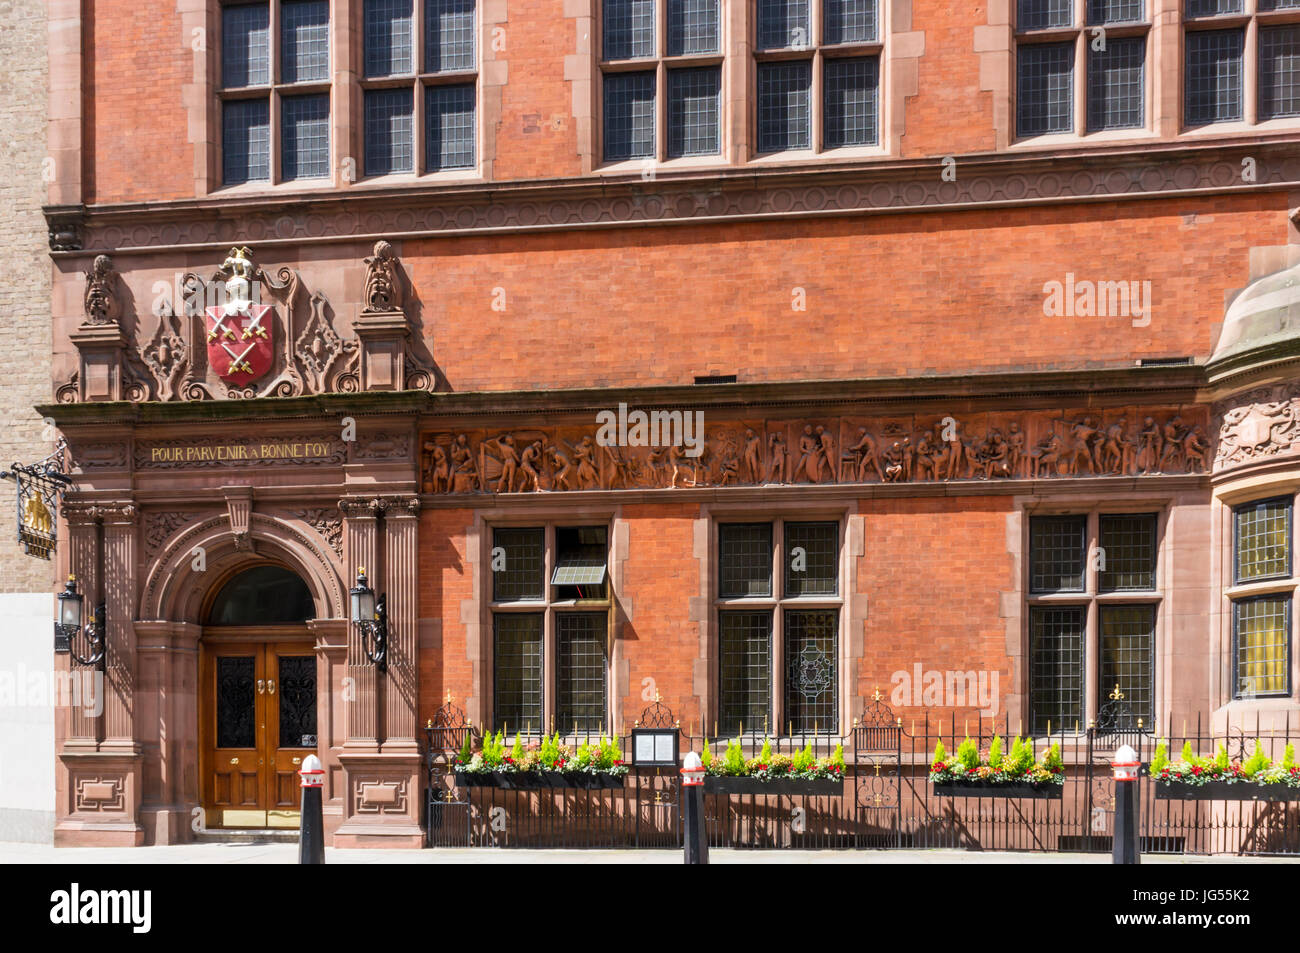 Cutler's Hall is the home of the Worshipful Company of Cutlers, one of the Livery Companies of the City of London. - Stock Image